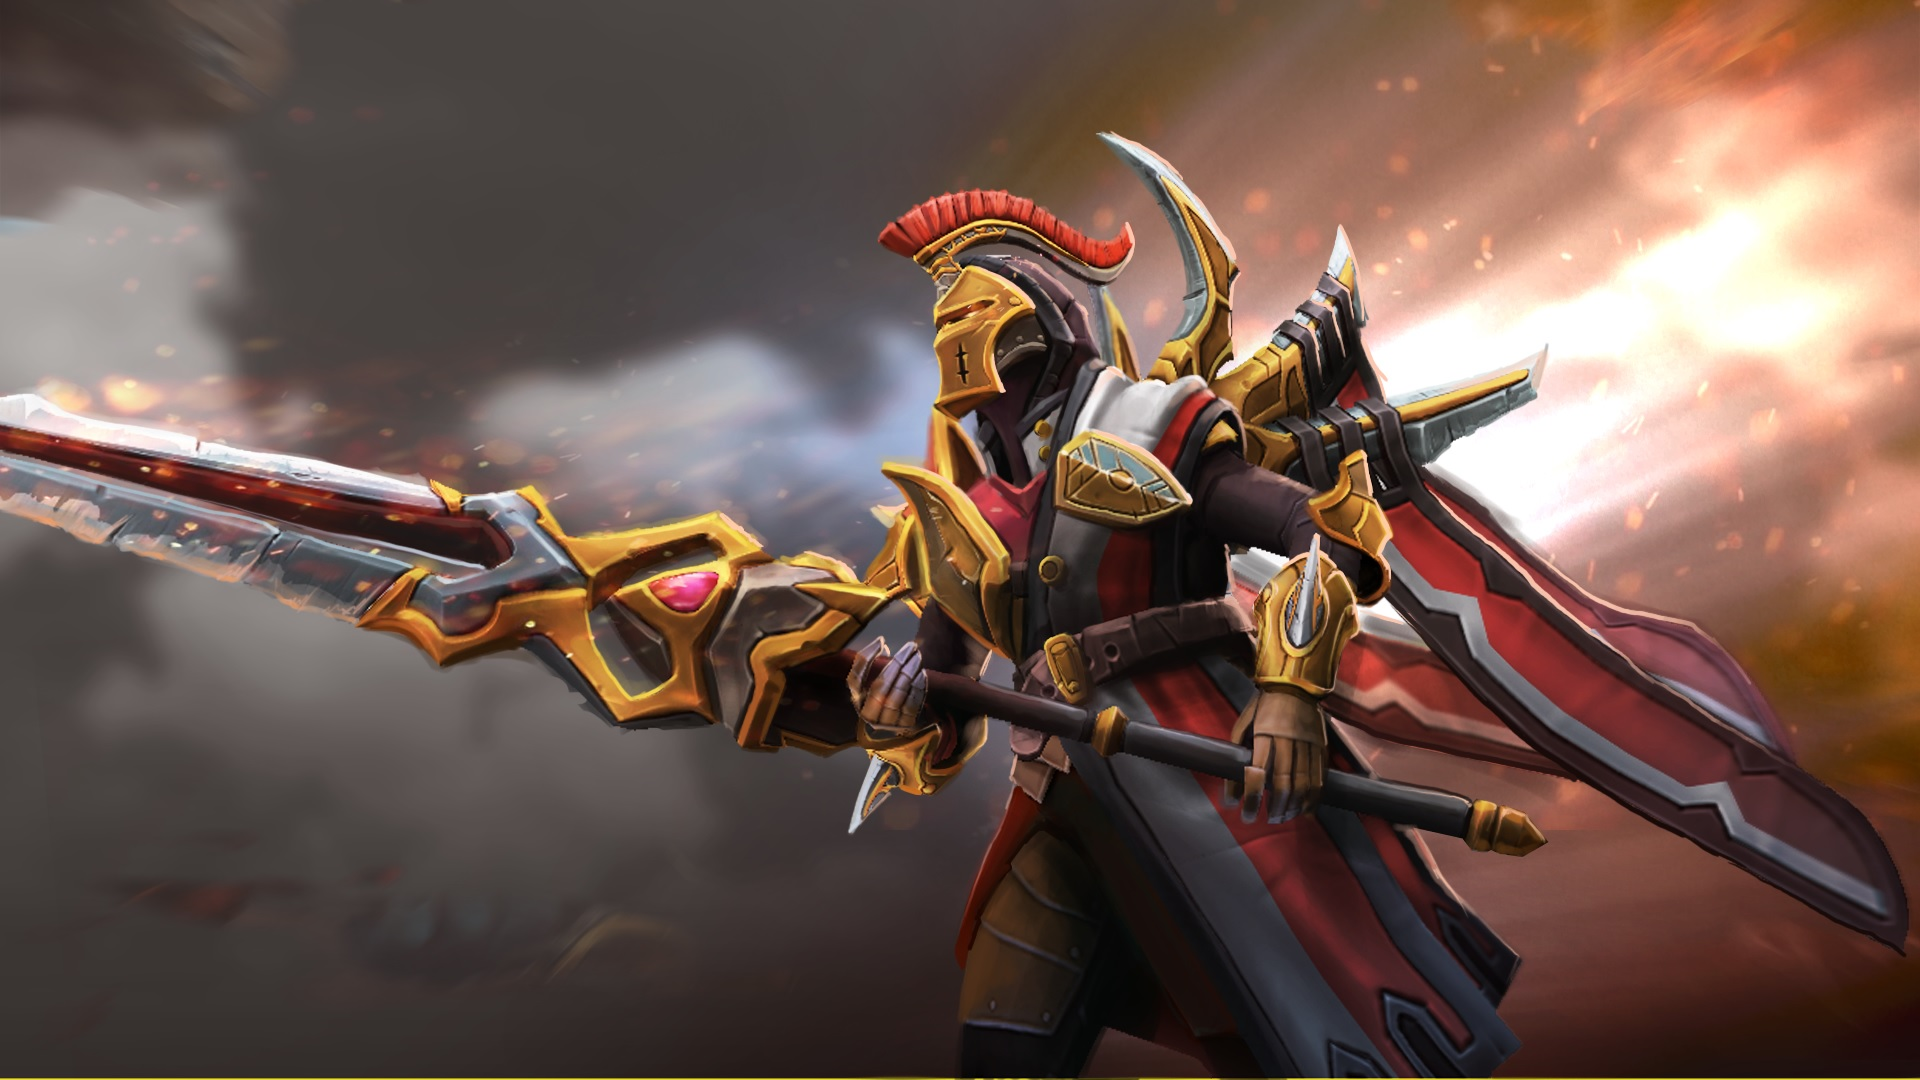 Legion Commander free wallpaper for computers